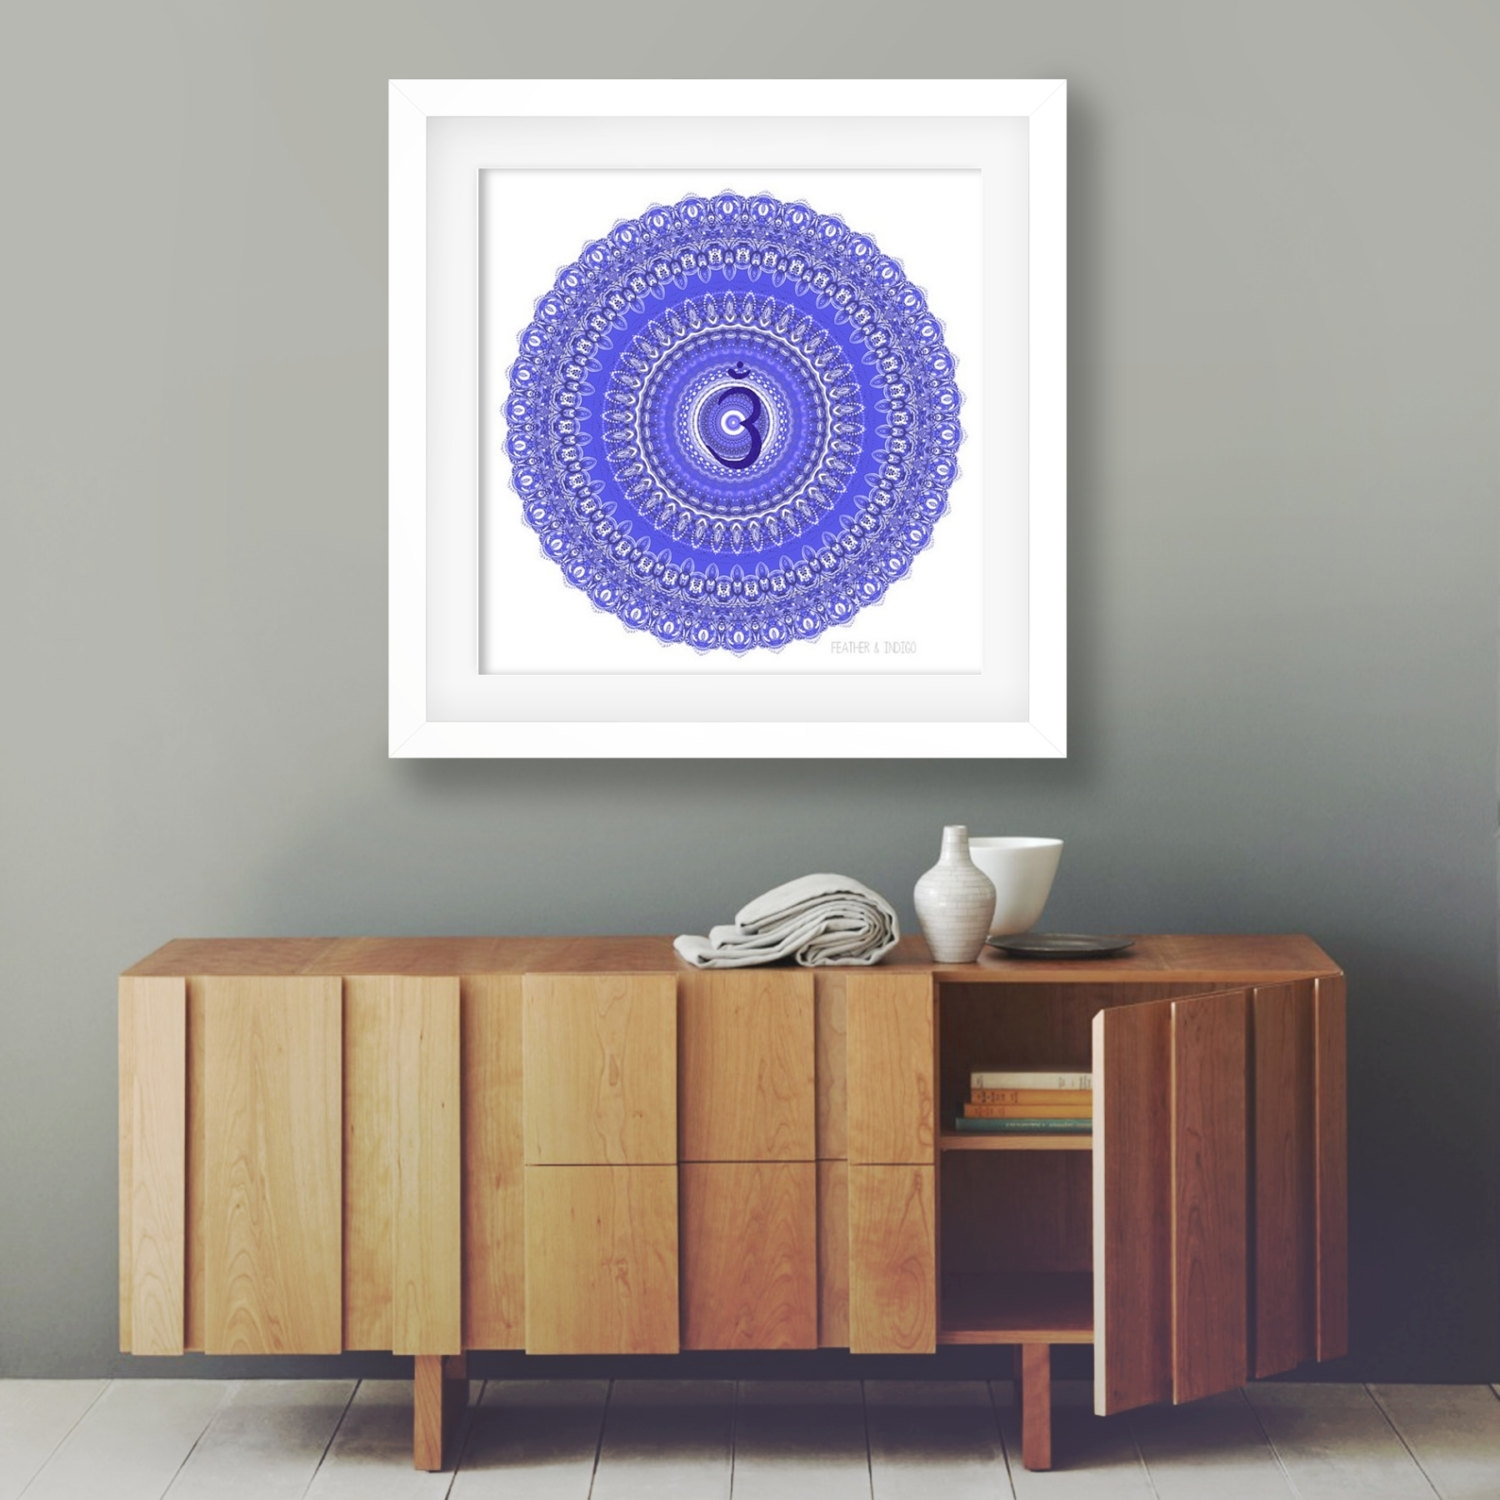 Popular Items For Mandala Wall Decor On Etsy Third Eye Chakra Art Pertaining To Most Current Etsy Wall Accents (View 7 of 15)